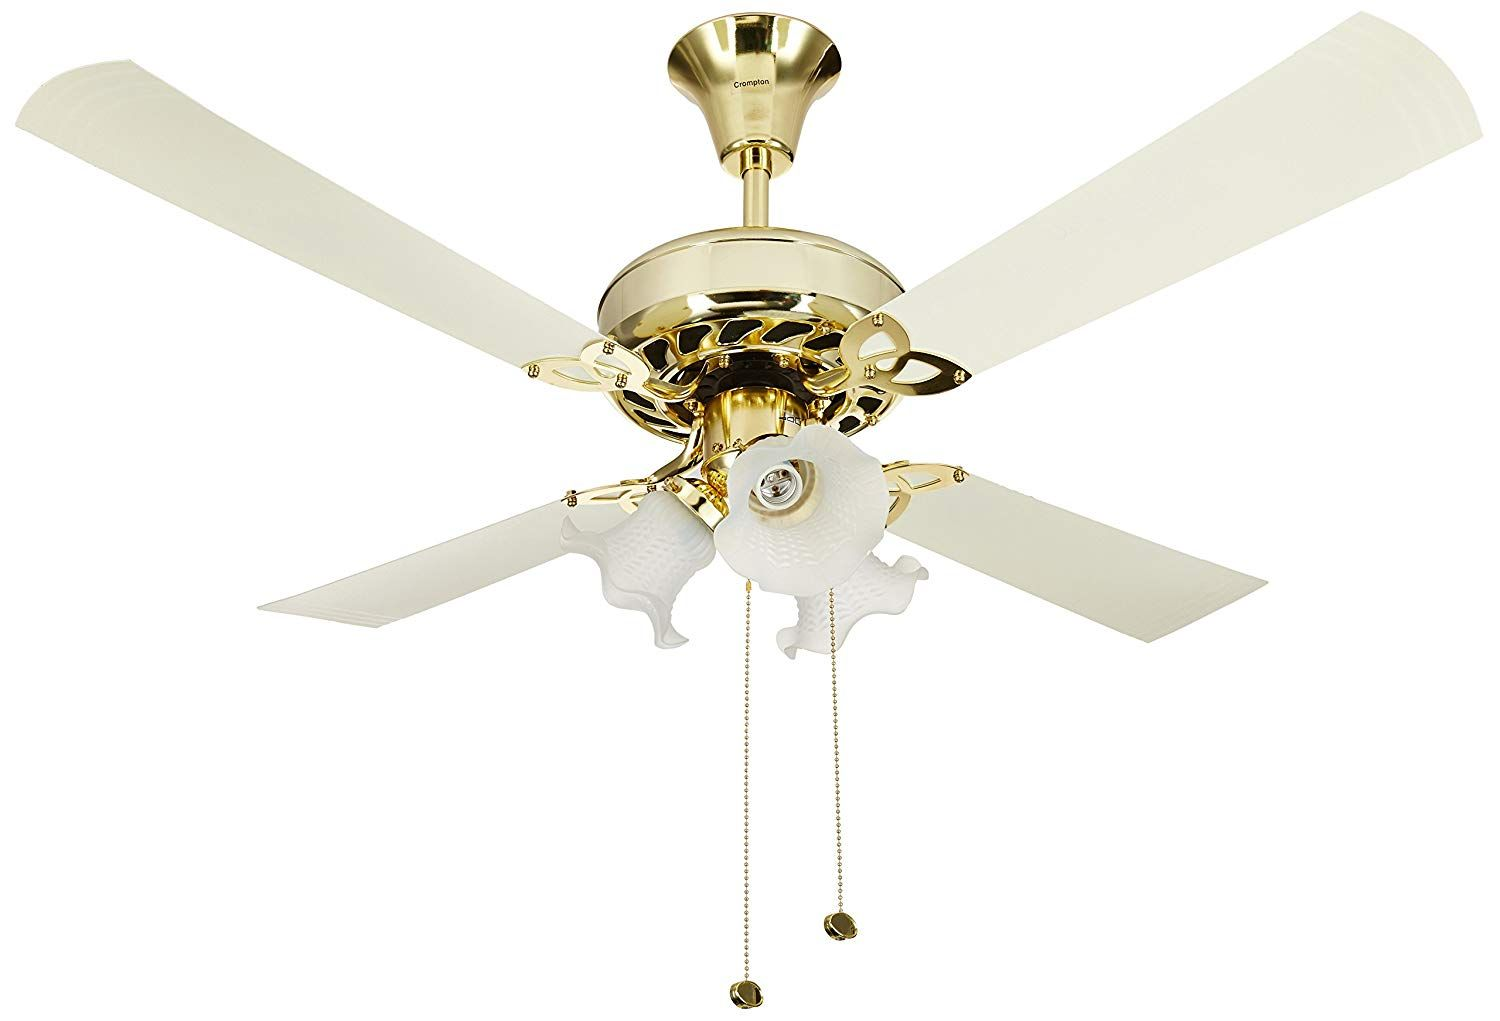 Best Ceiling Fan Under 5000 Rupees In India Market Best Ceiling